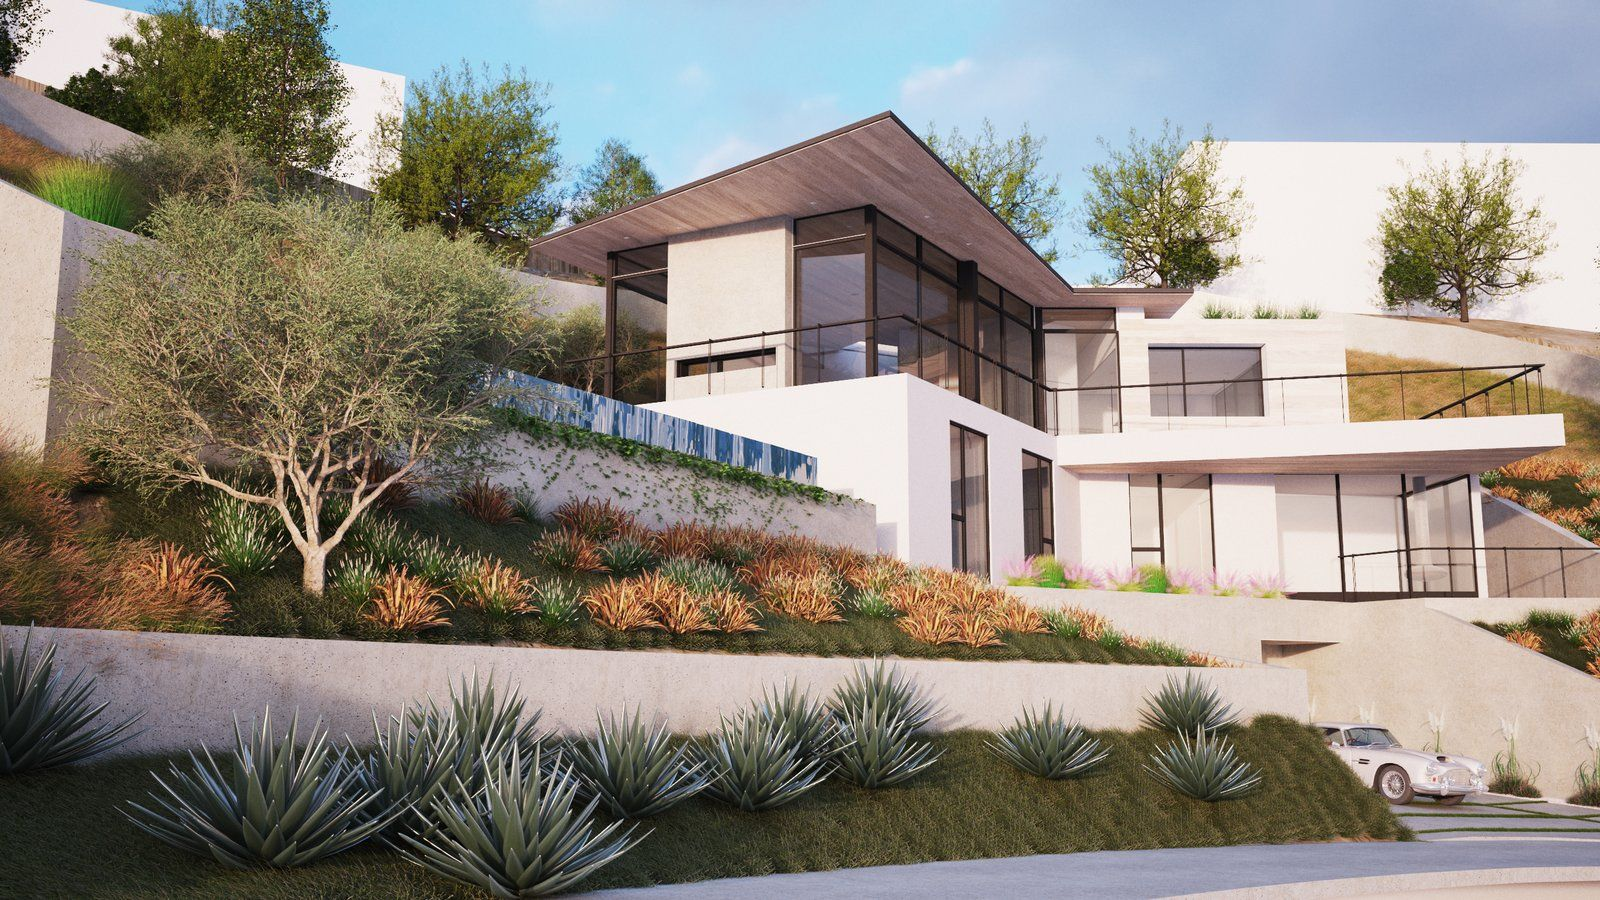 Modern home with Exterior, House, Stucco Siding Material